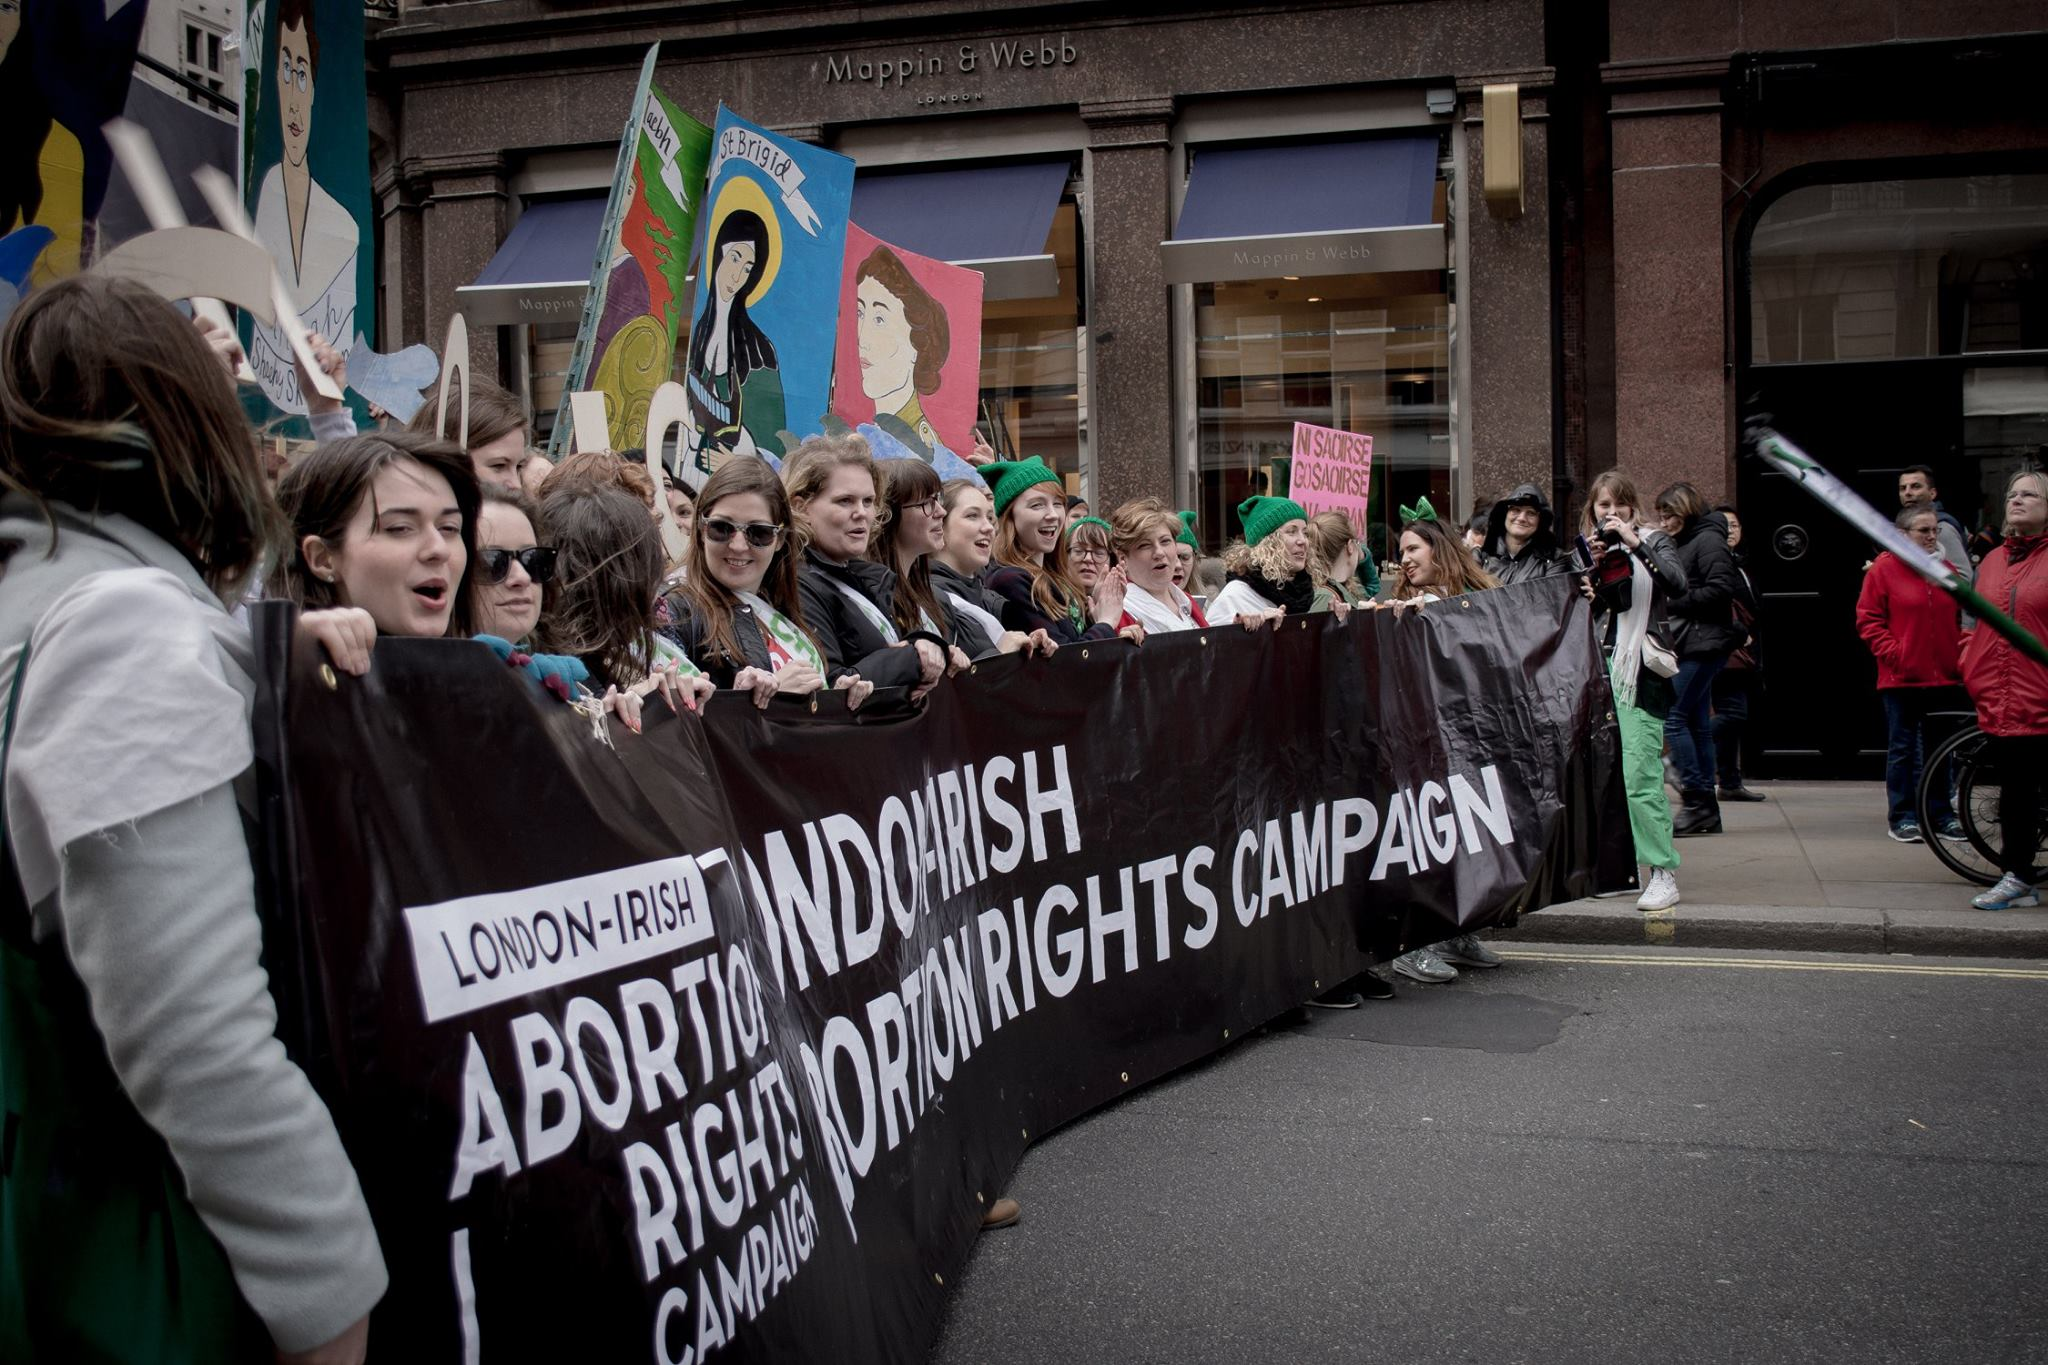 London-Irish Abortion Rights Campaign in the St Patrick's Day Parade, London, with MP Emily Thornberry (2017)